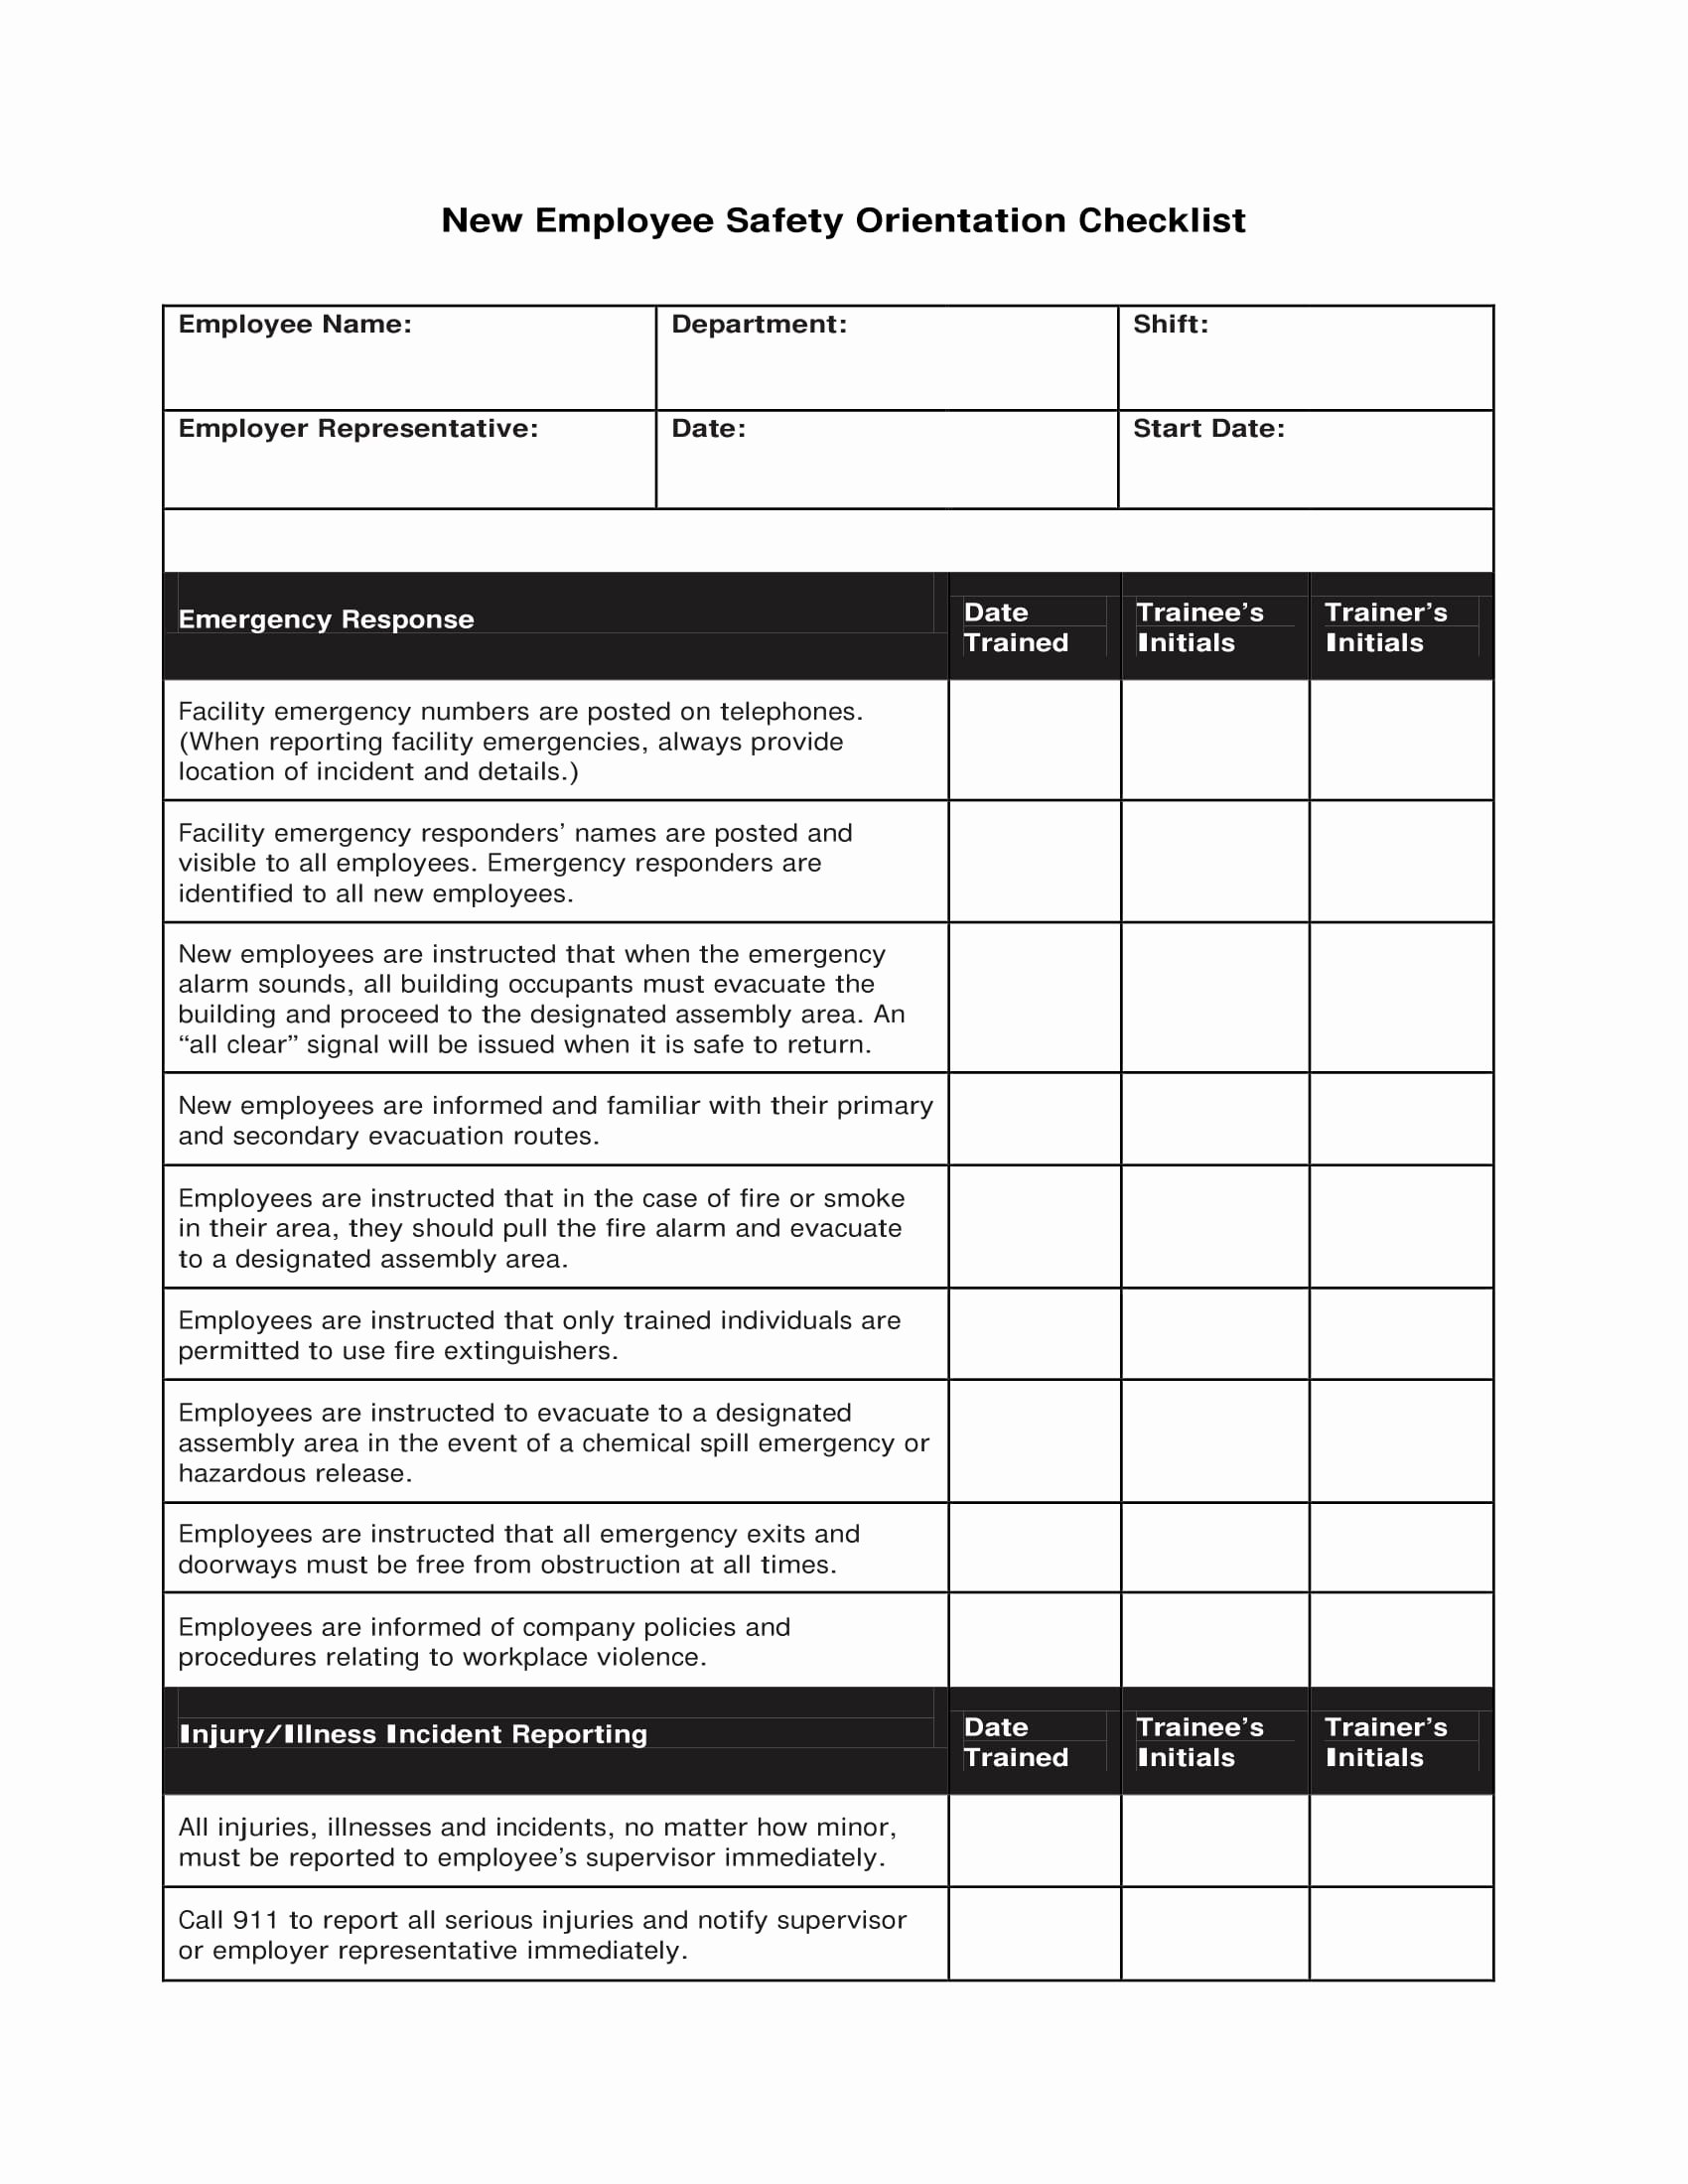 Employee Training Checklist Template Lovely 12 New Employee orientation Checklist Examples Pdf